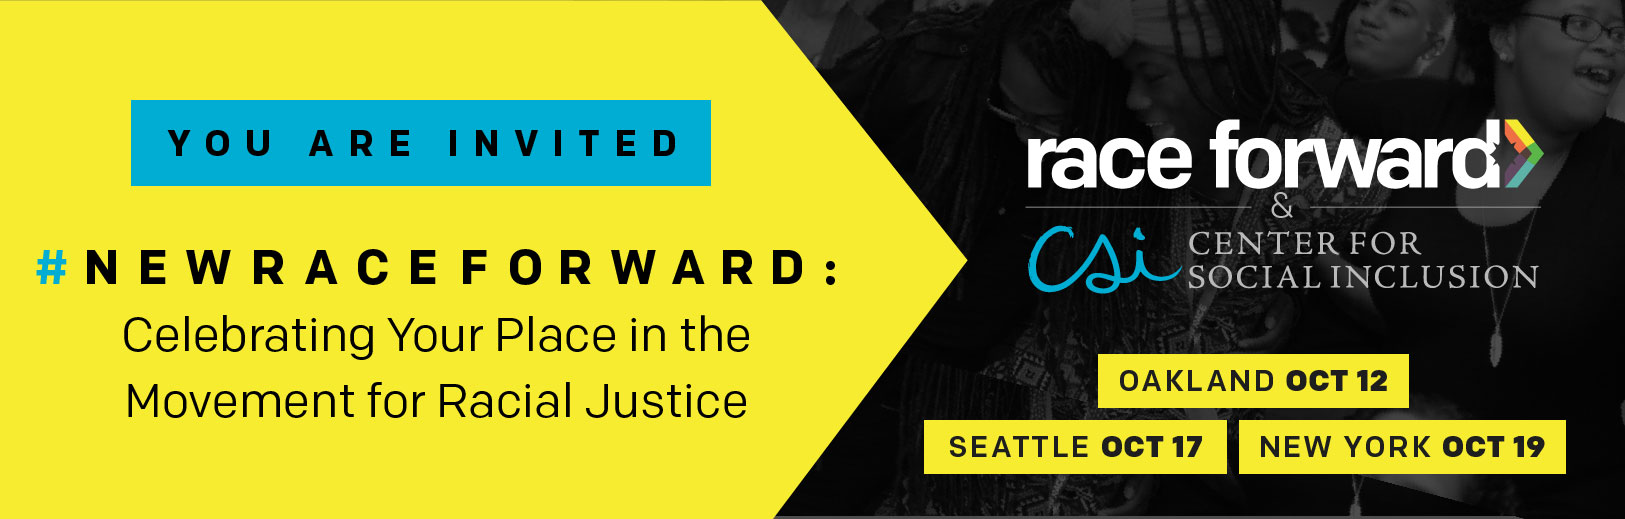 Race Forward & Center for Social Inclusion: You're invited. Celebrating your place in the movement for racial justice. Oakland October 12, Seattle October 17, New York October 19